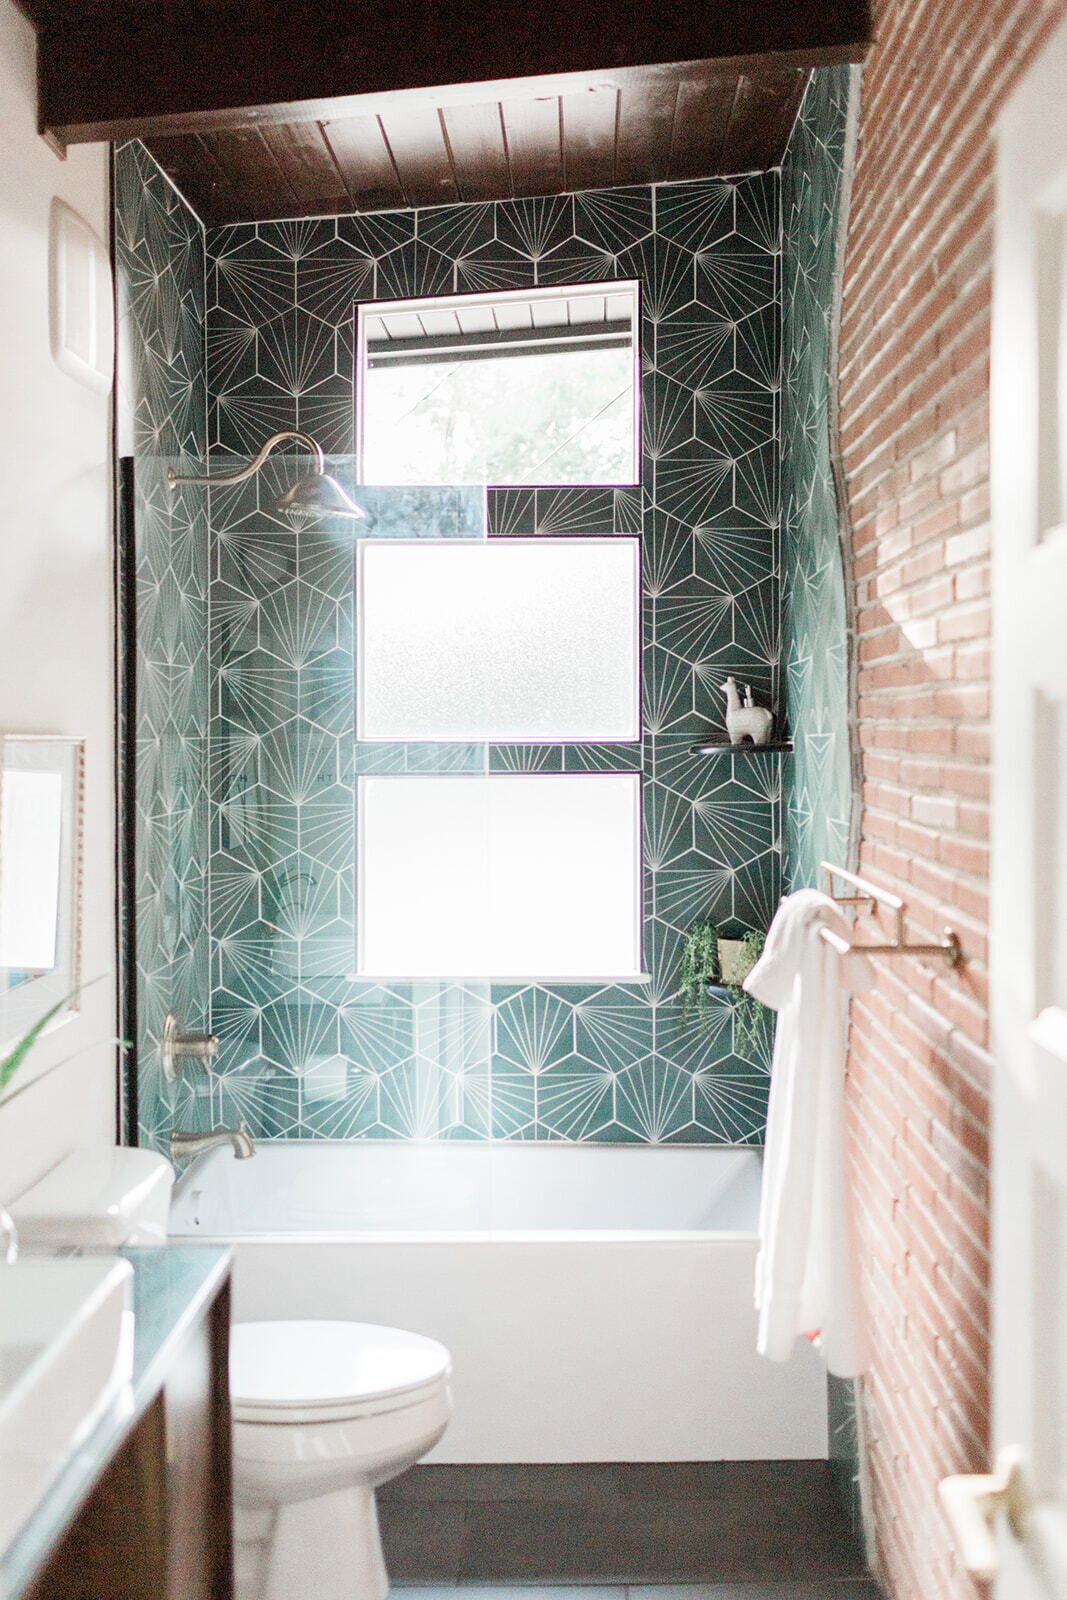 Basking in natural light, the renovated bathroom bathroom offers all-new finishes, including brightly colored tiles that contrast with the refinished brick wall.  Photo 19 of 21 in Before & After: A Renovated Iowan Midcentury House Impresses With an Affordable $330K Price Point